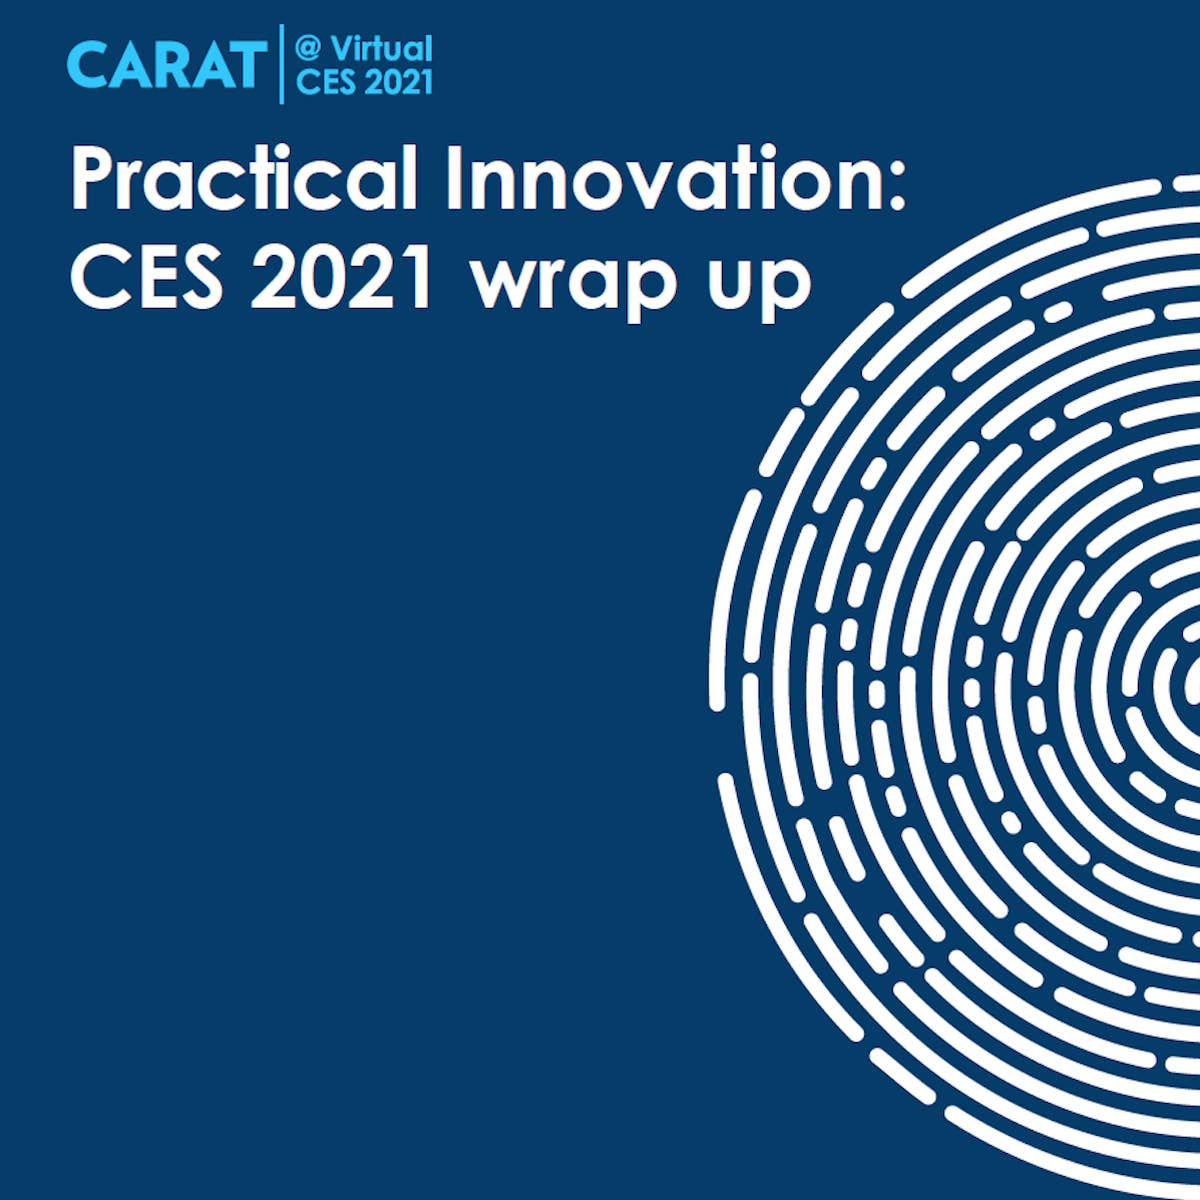 Practical innovation: CES wrap up